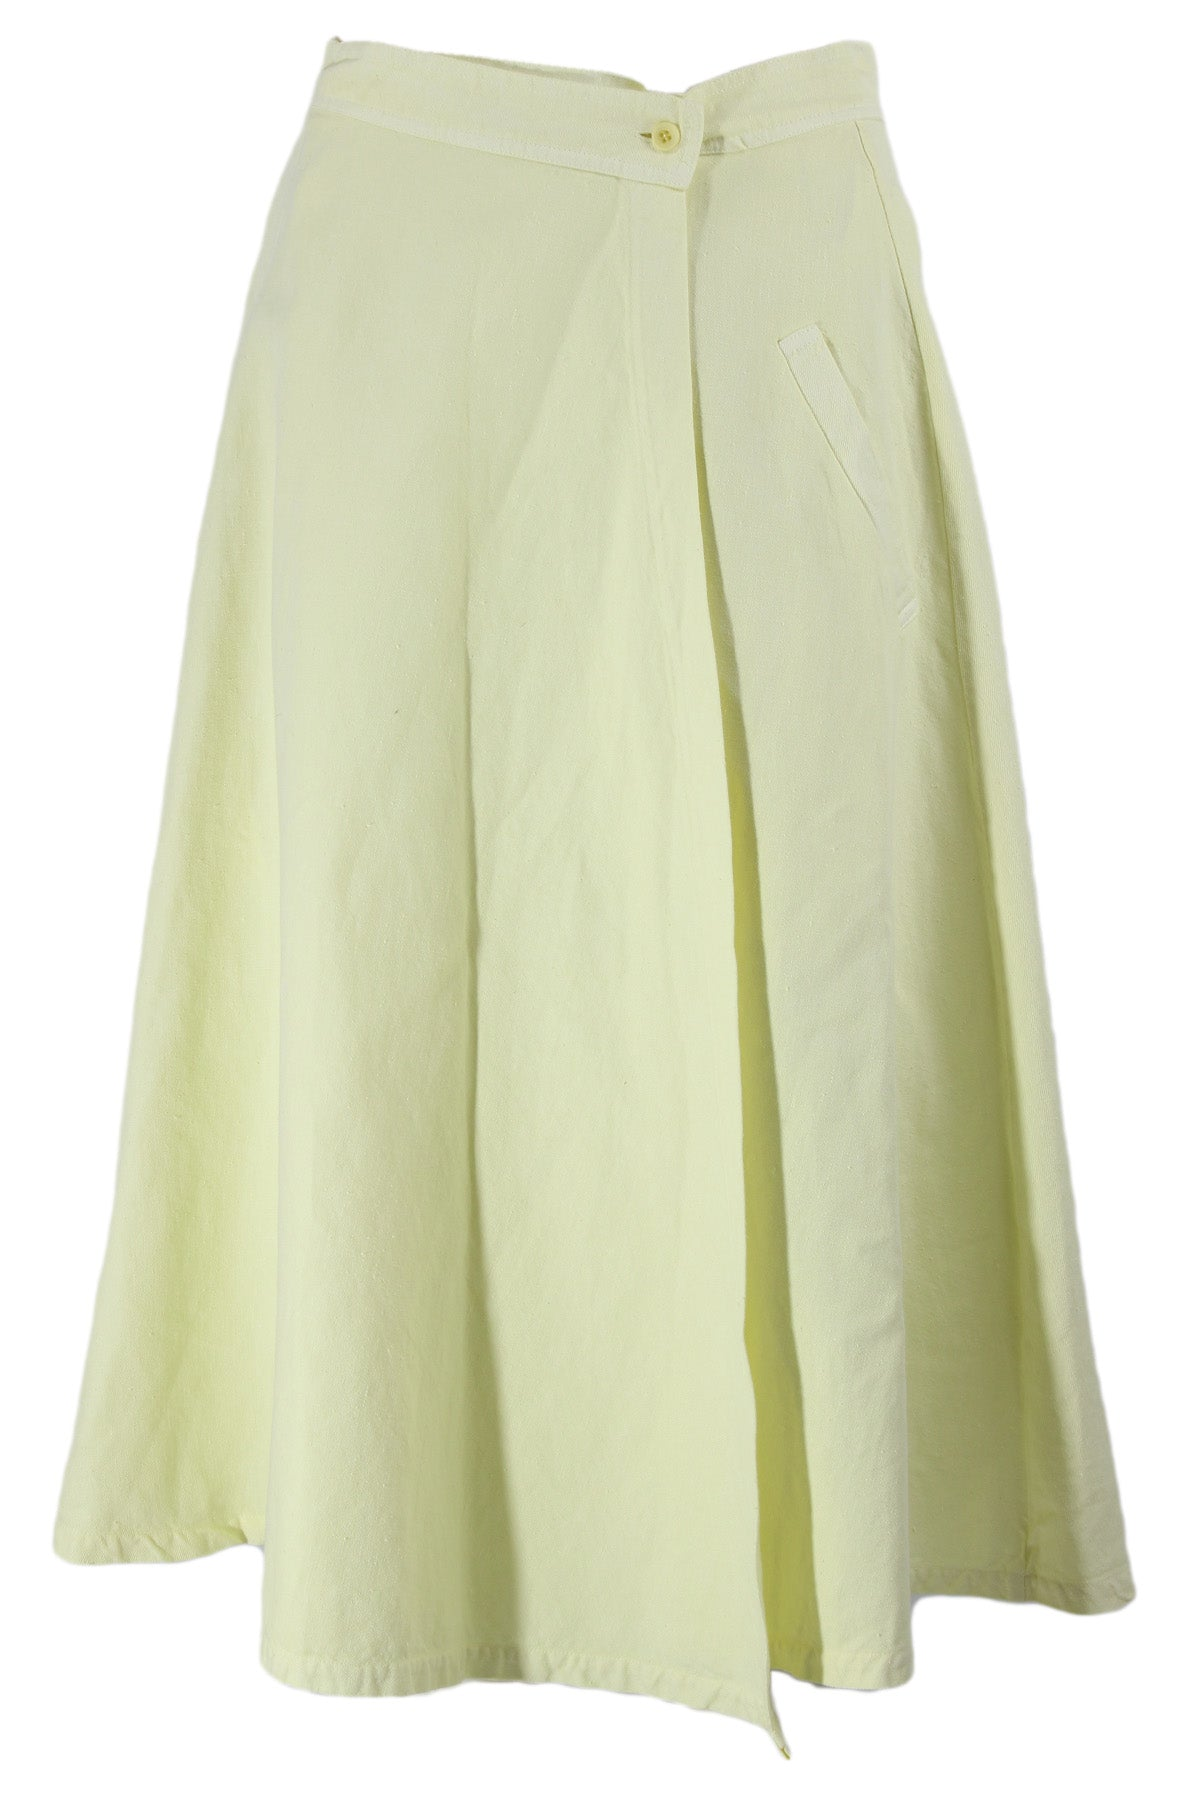 labo art neon yellow wrap midi skirt. features a button closure & two slot pockets.